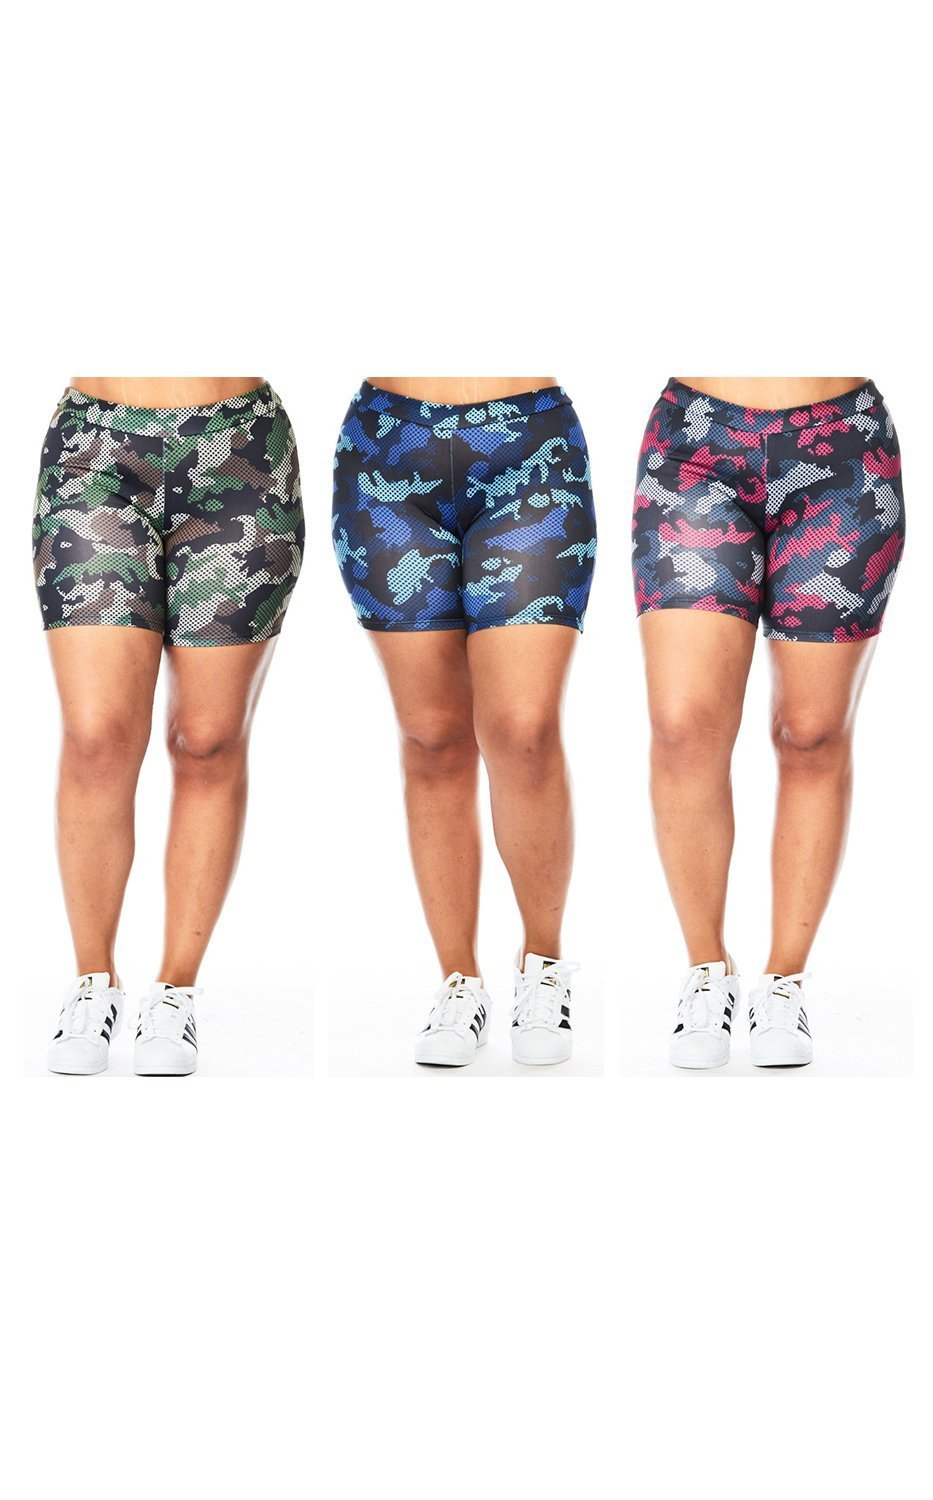 new style 59571 76e91 Get Quotations · Womens Plus Compression Yoga Camo Printed Spandex Shorts  3113X